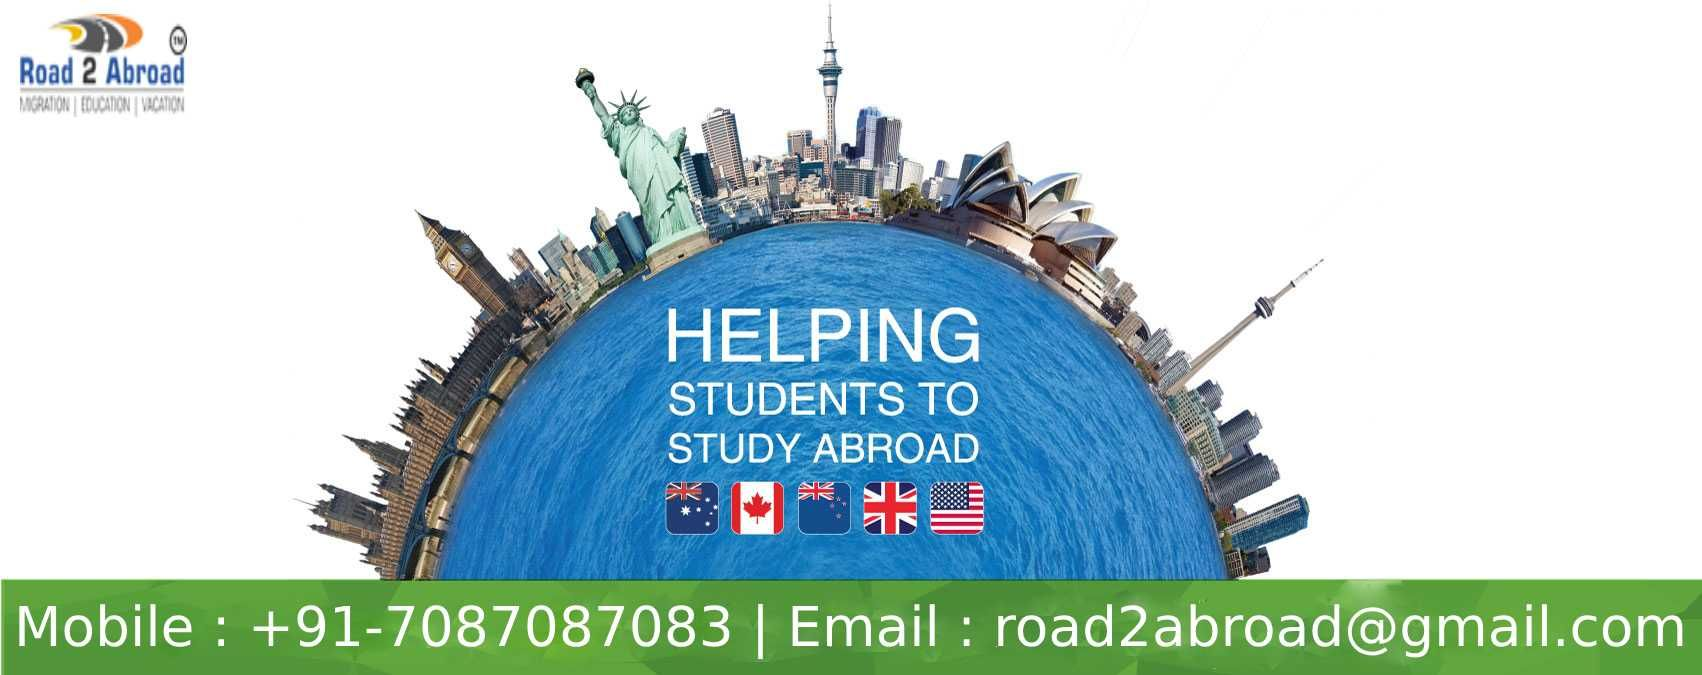 Pin by Road 2 Abroad on Abroad Study Consultants